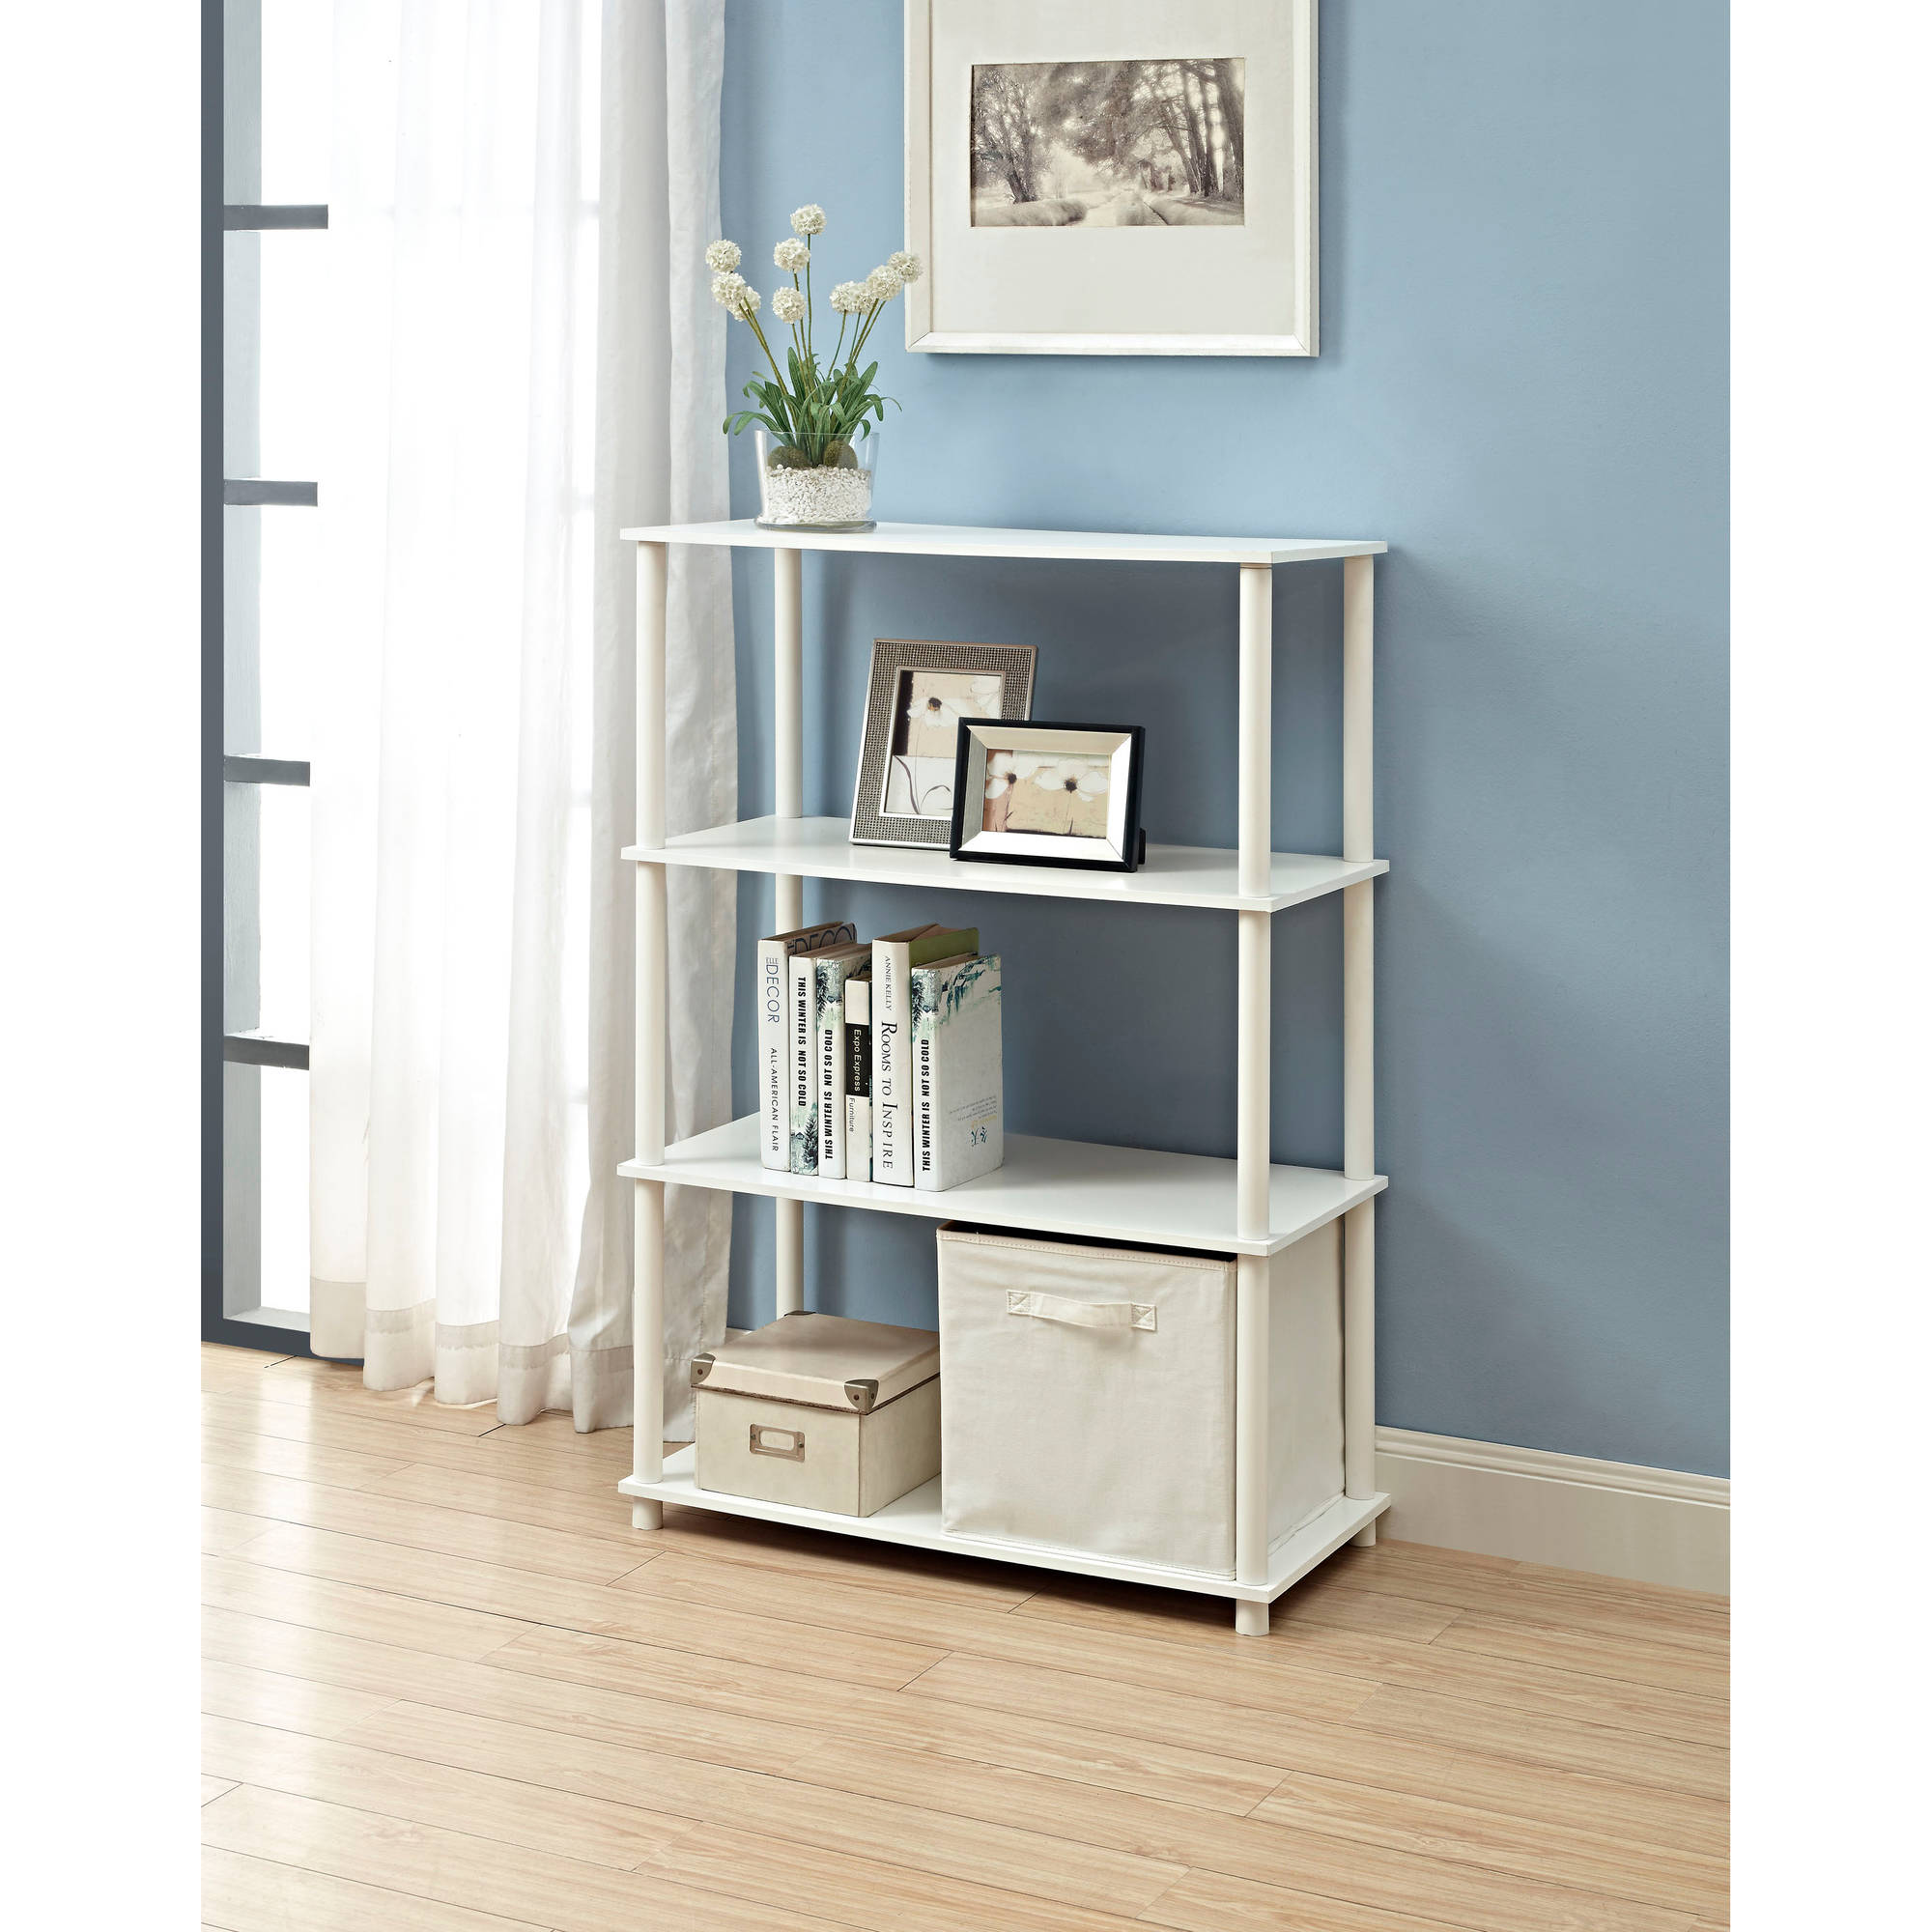 Mainstays No Tools 6-Cube Standard Storage Shelf, Multiple Colors